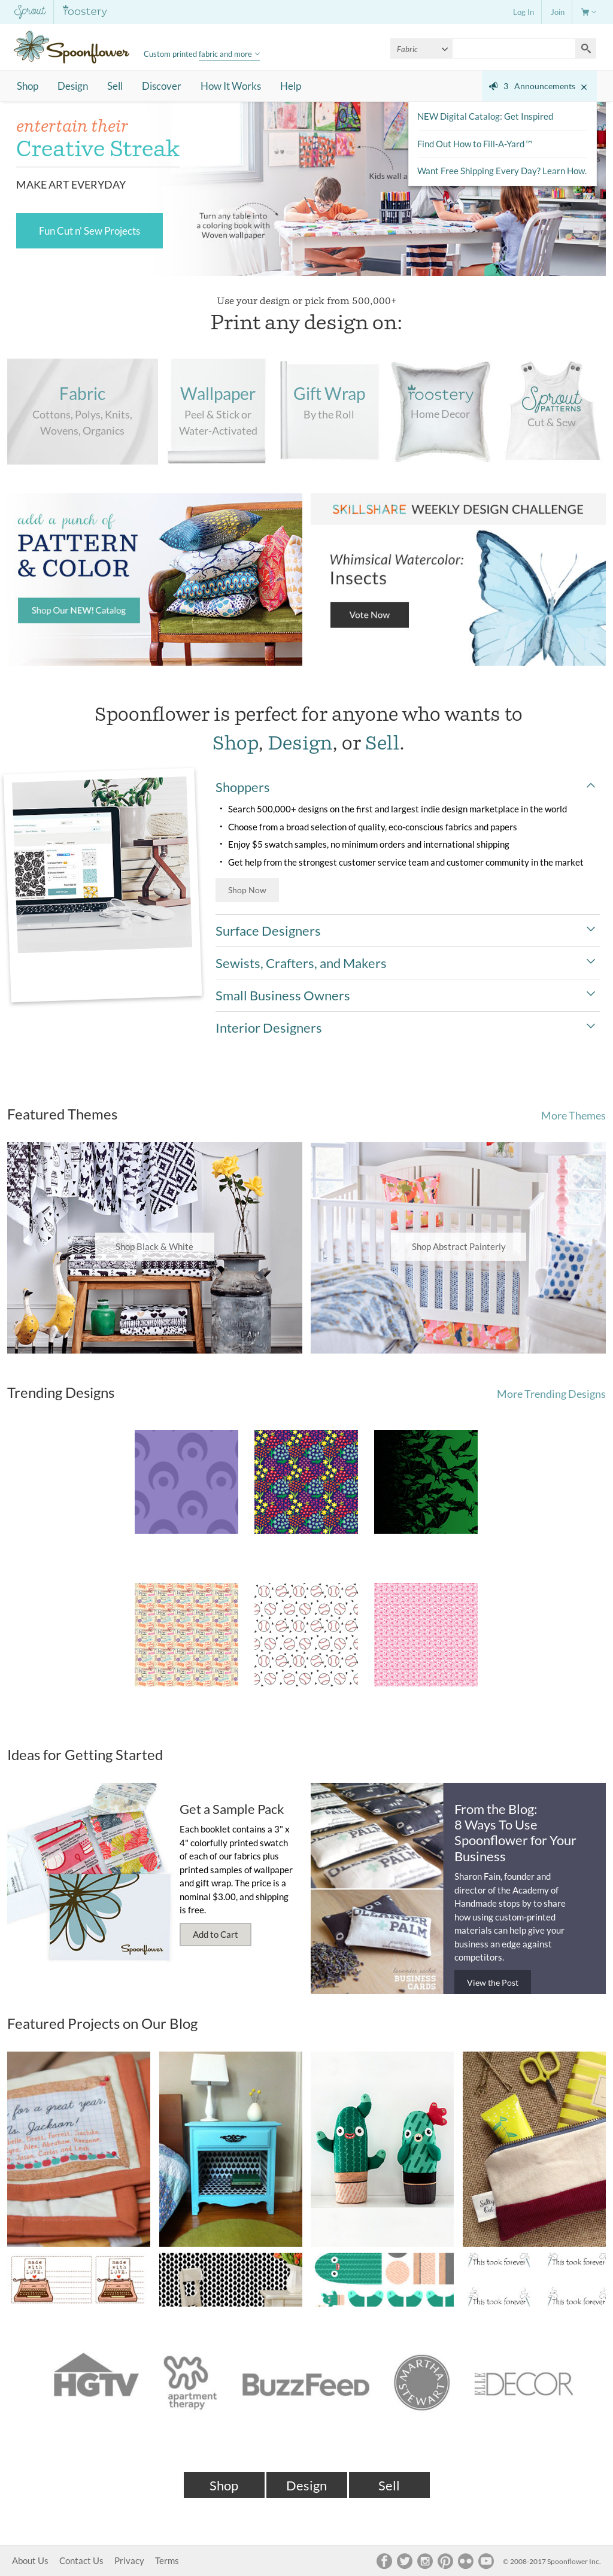 Spoonflower Competitors, Revenue and Employees - Owler